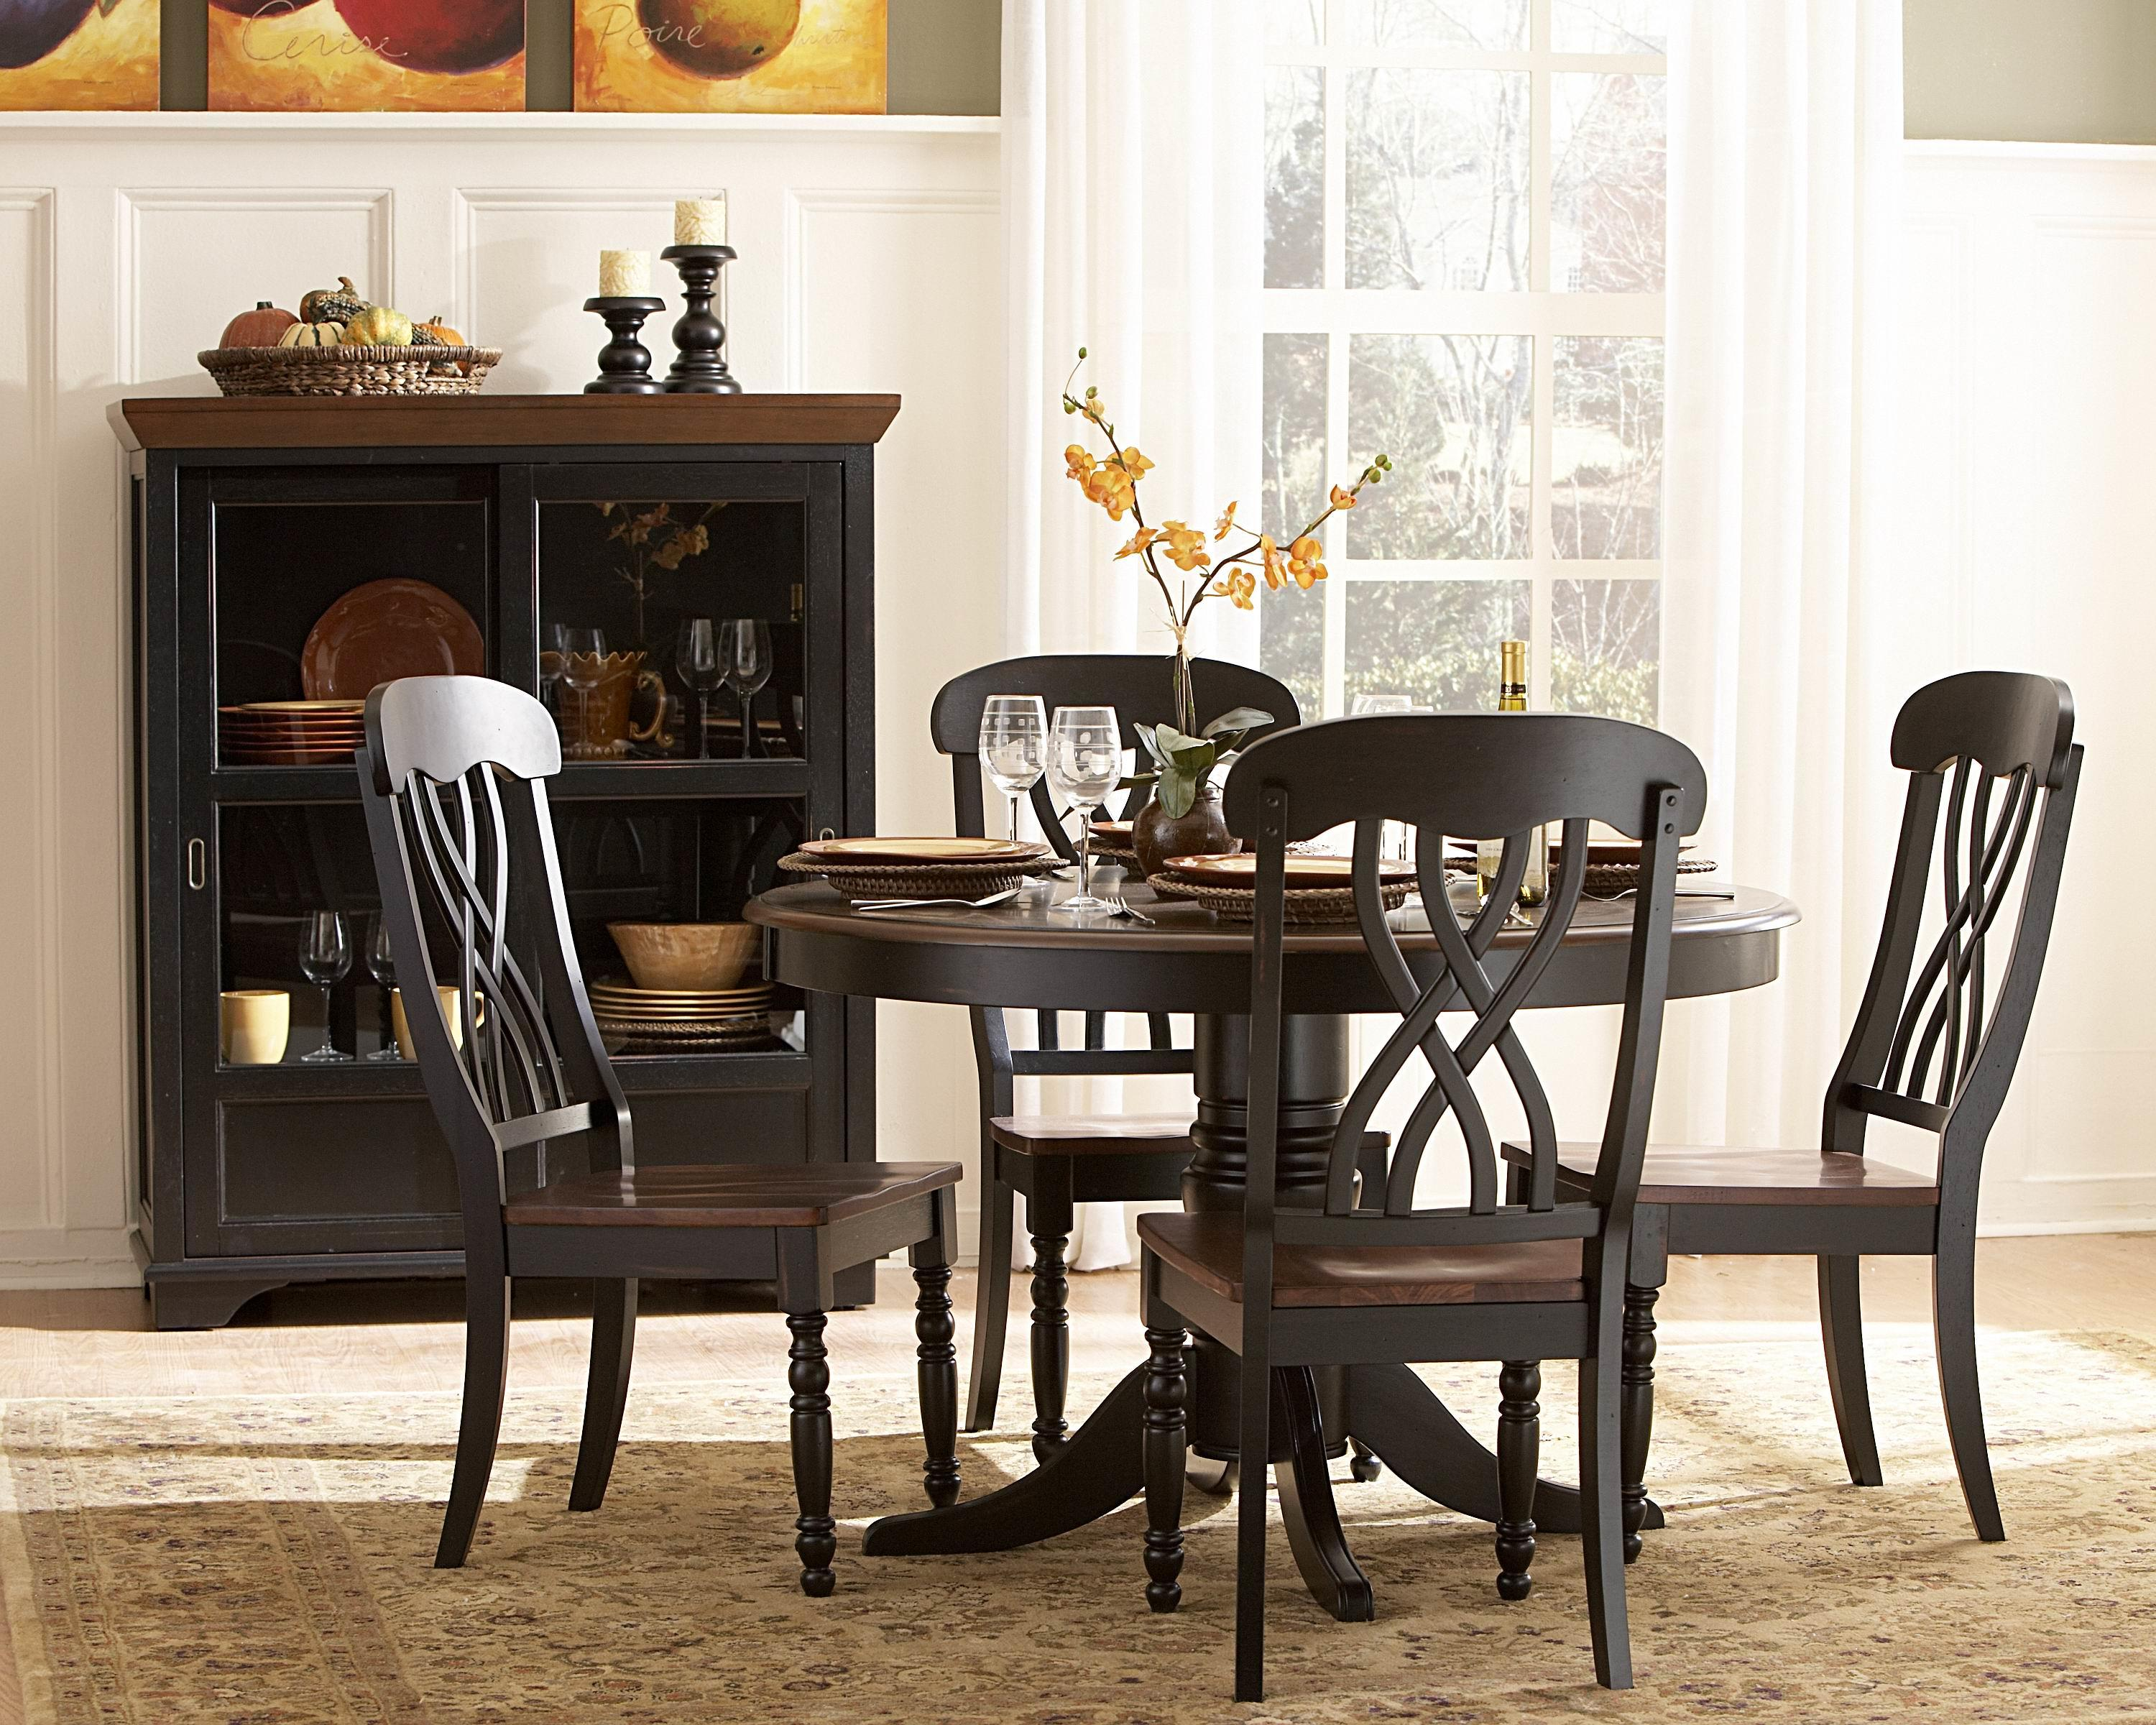 adorable round dining room table sets for 4 homesfeed. Black Bedroom Furniture Sets. Home Design Ideas